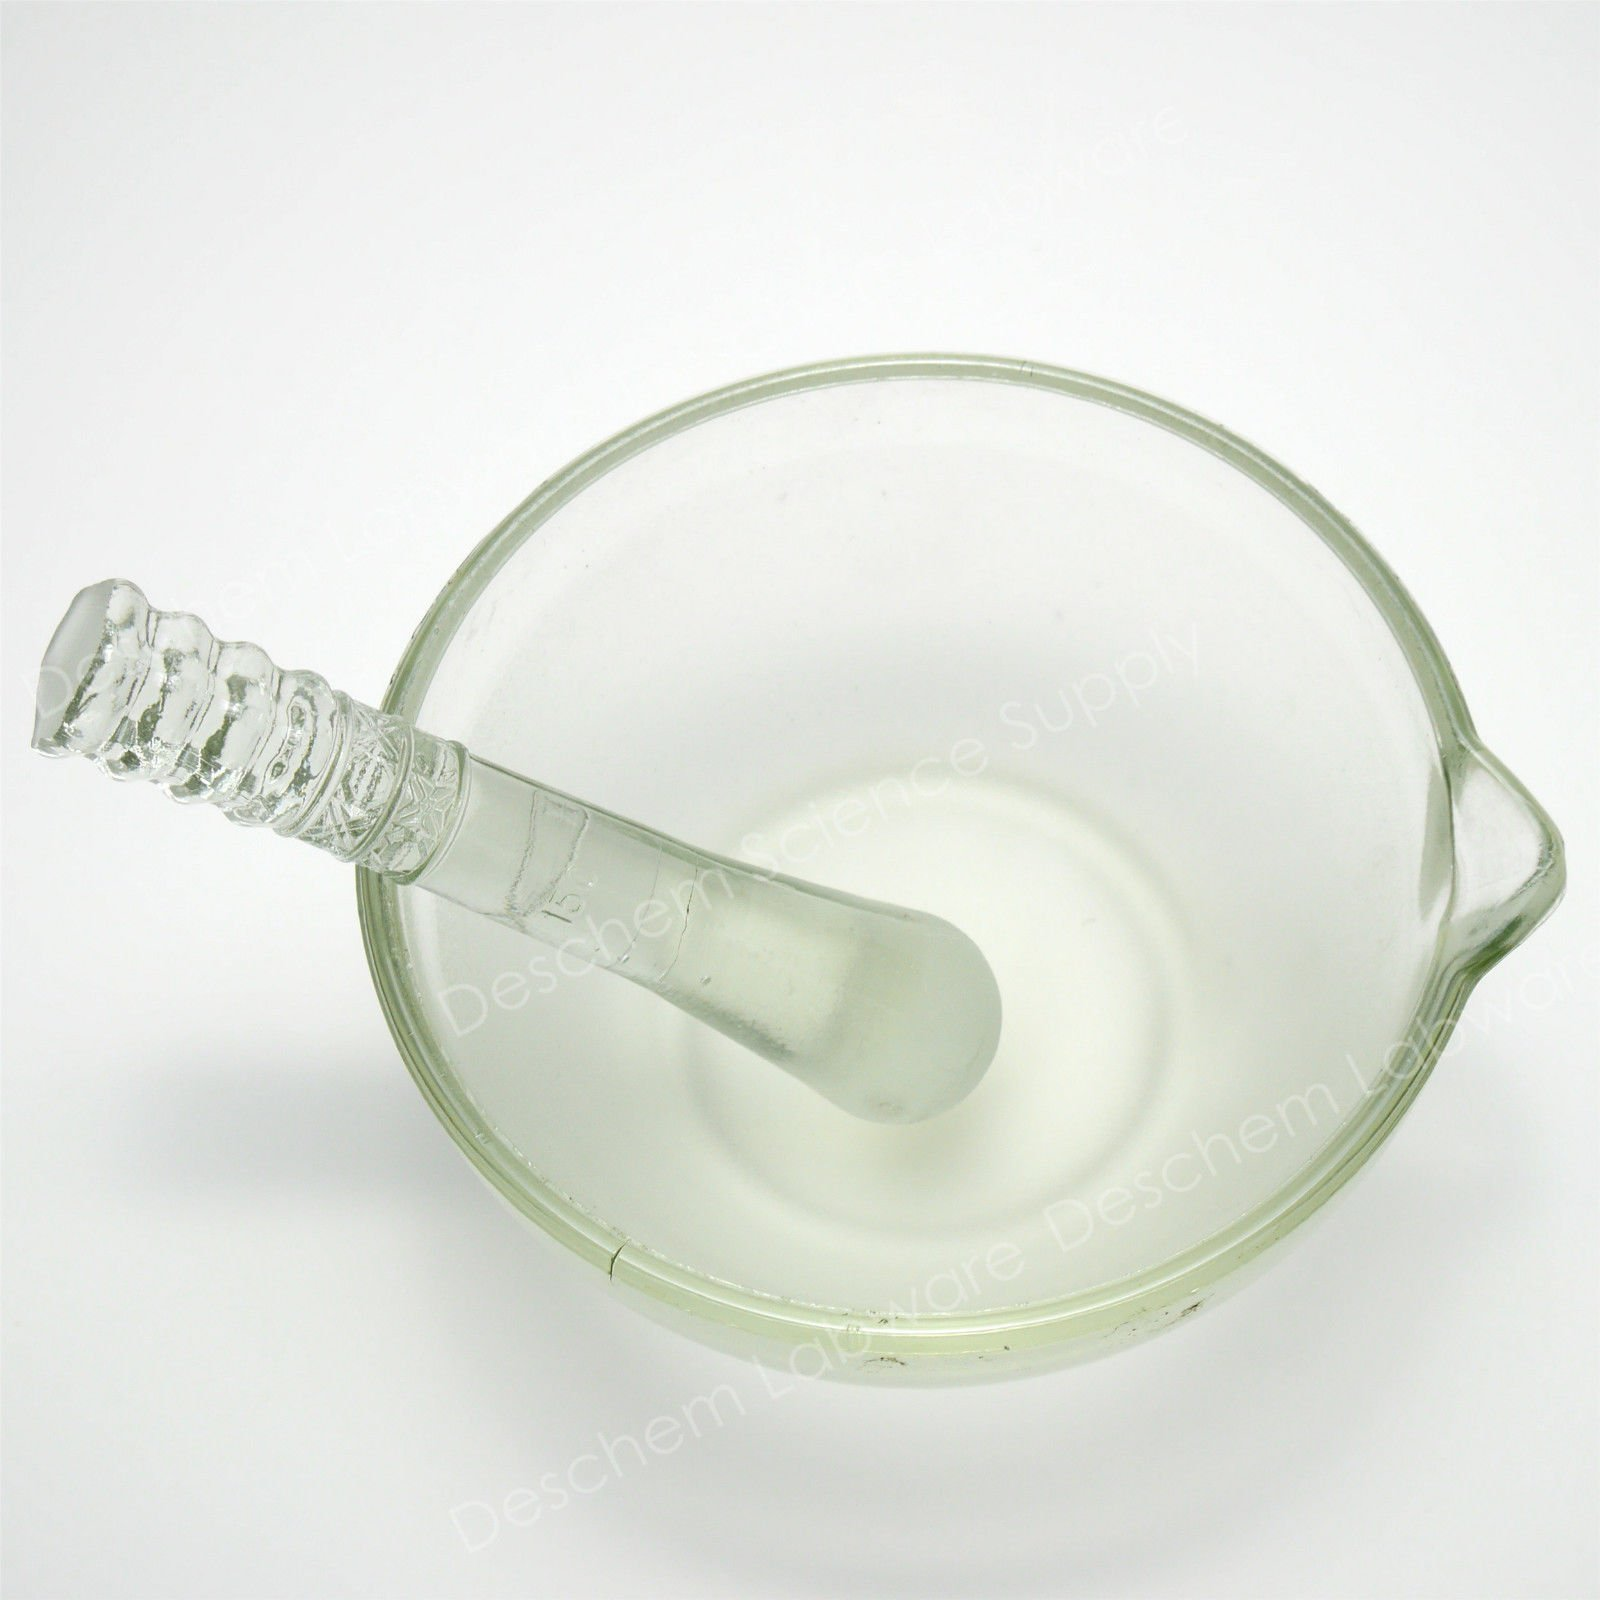 Deschem 150mm,Footed Glass Mortar & Pestle,ID 15CM,Lab Glassware